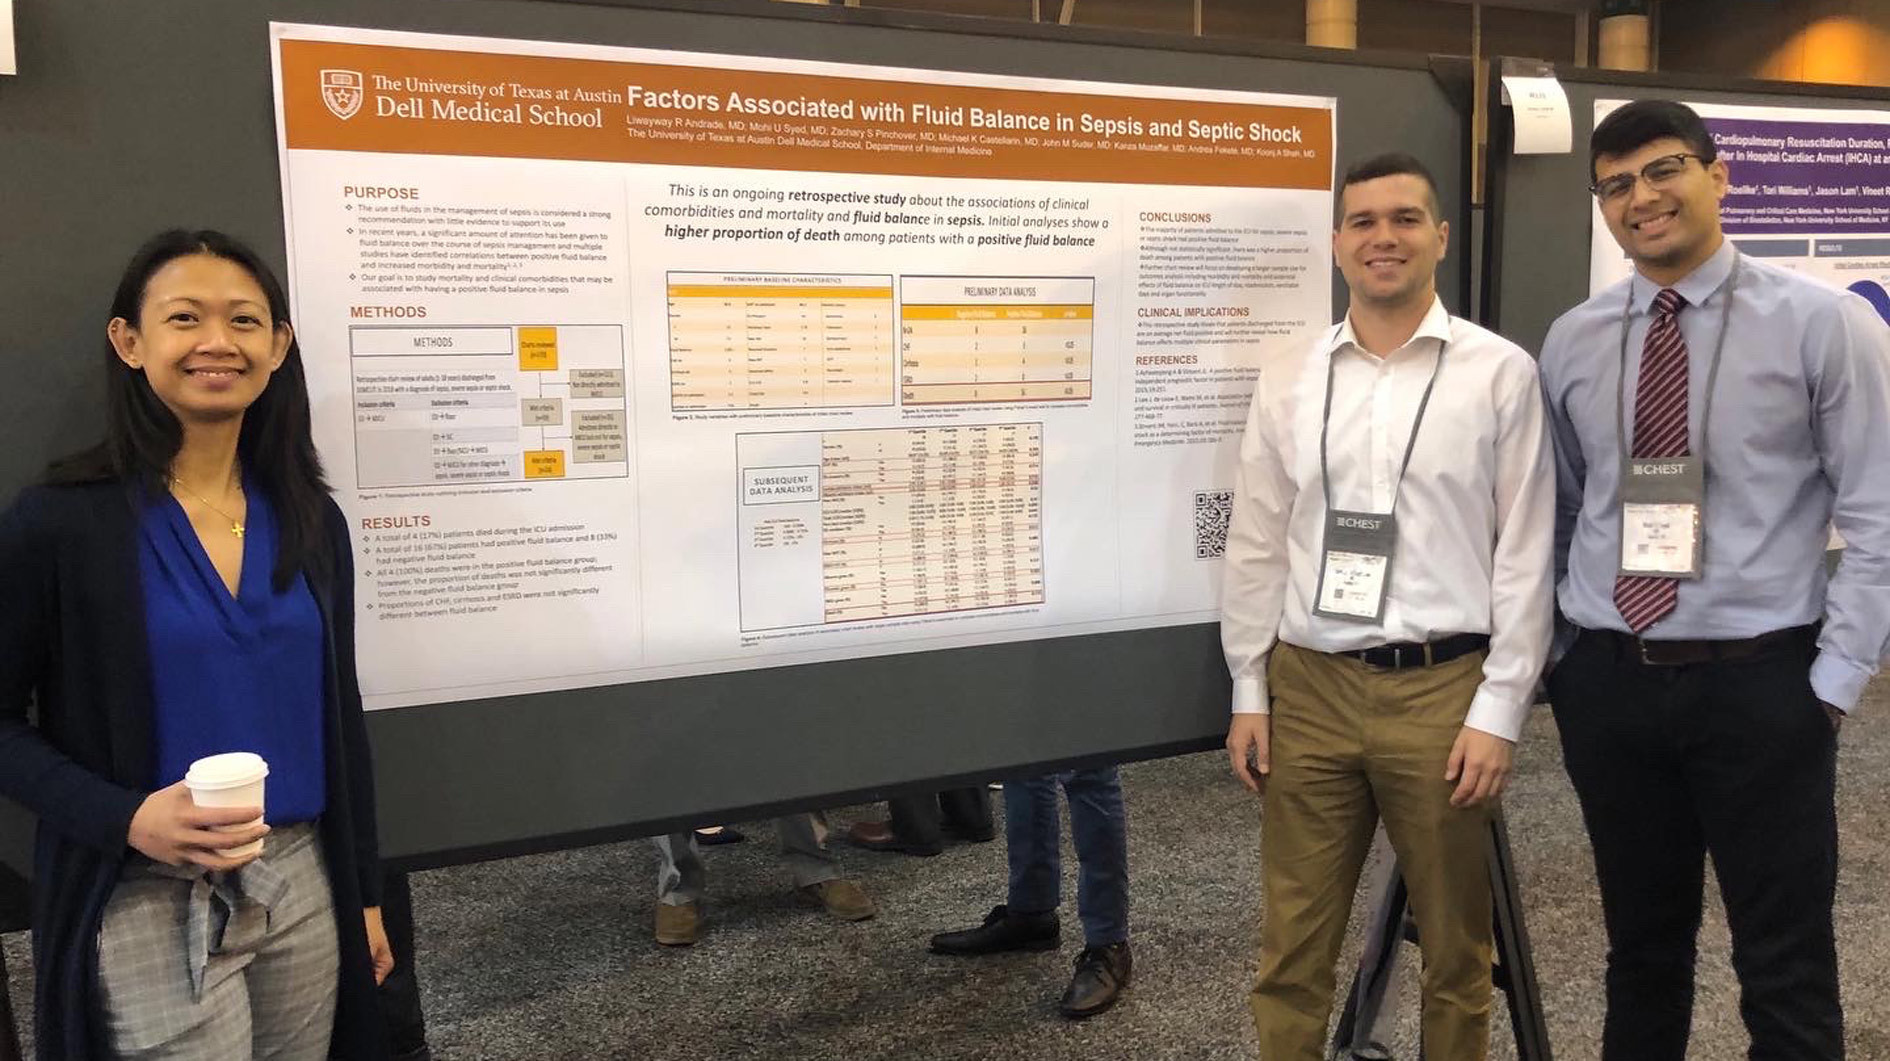 Three Internal Medicine residents presenting a poster at a conference.